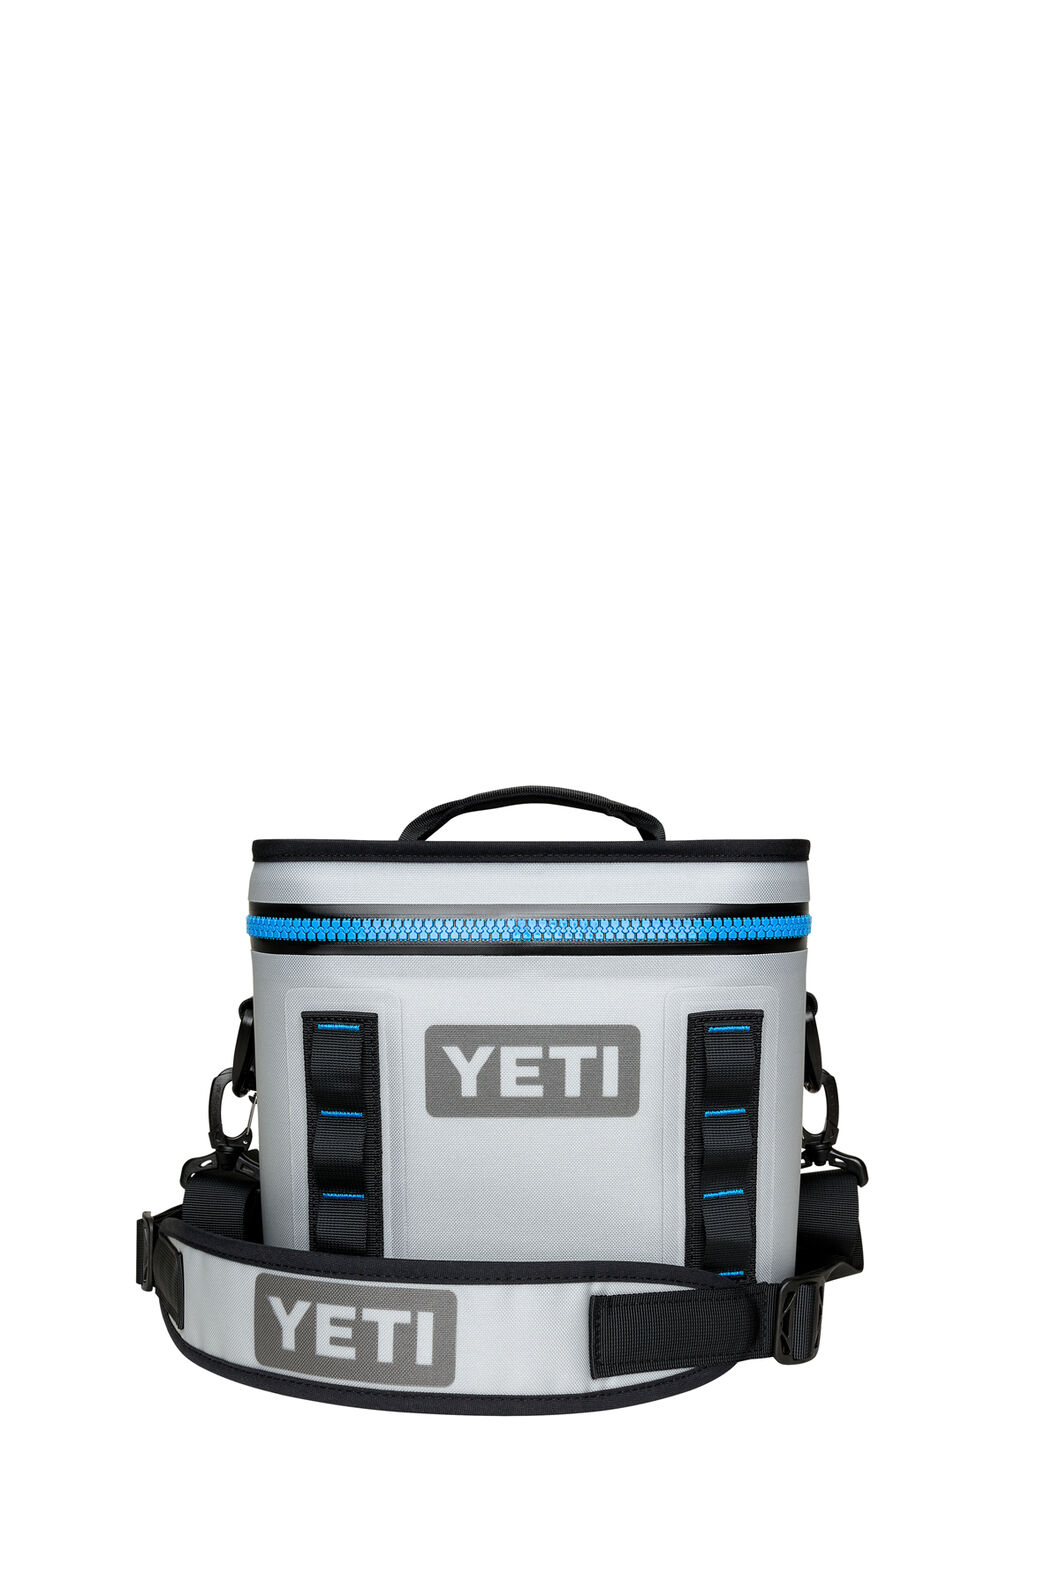 Yeti Hopper Flip 8 Soft Cooler, Fog Grey, hi-res